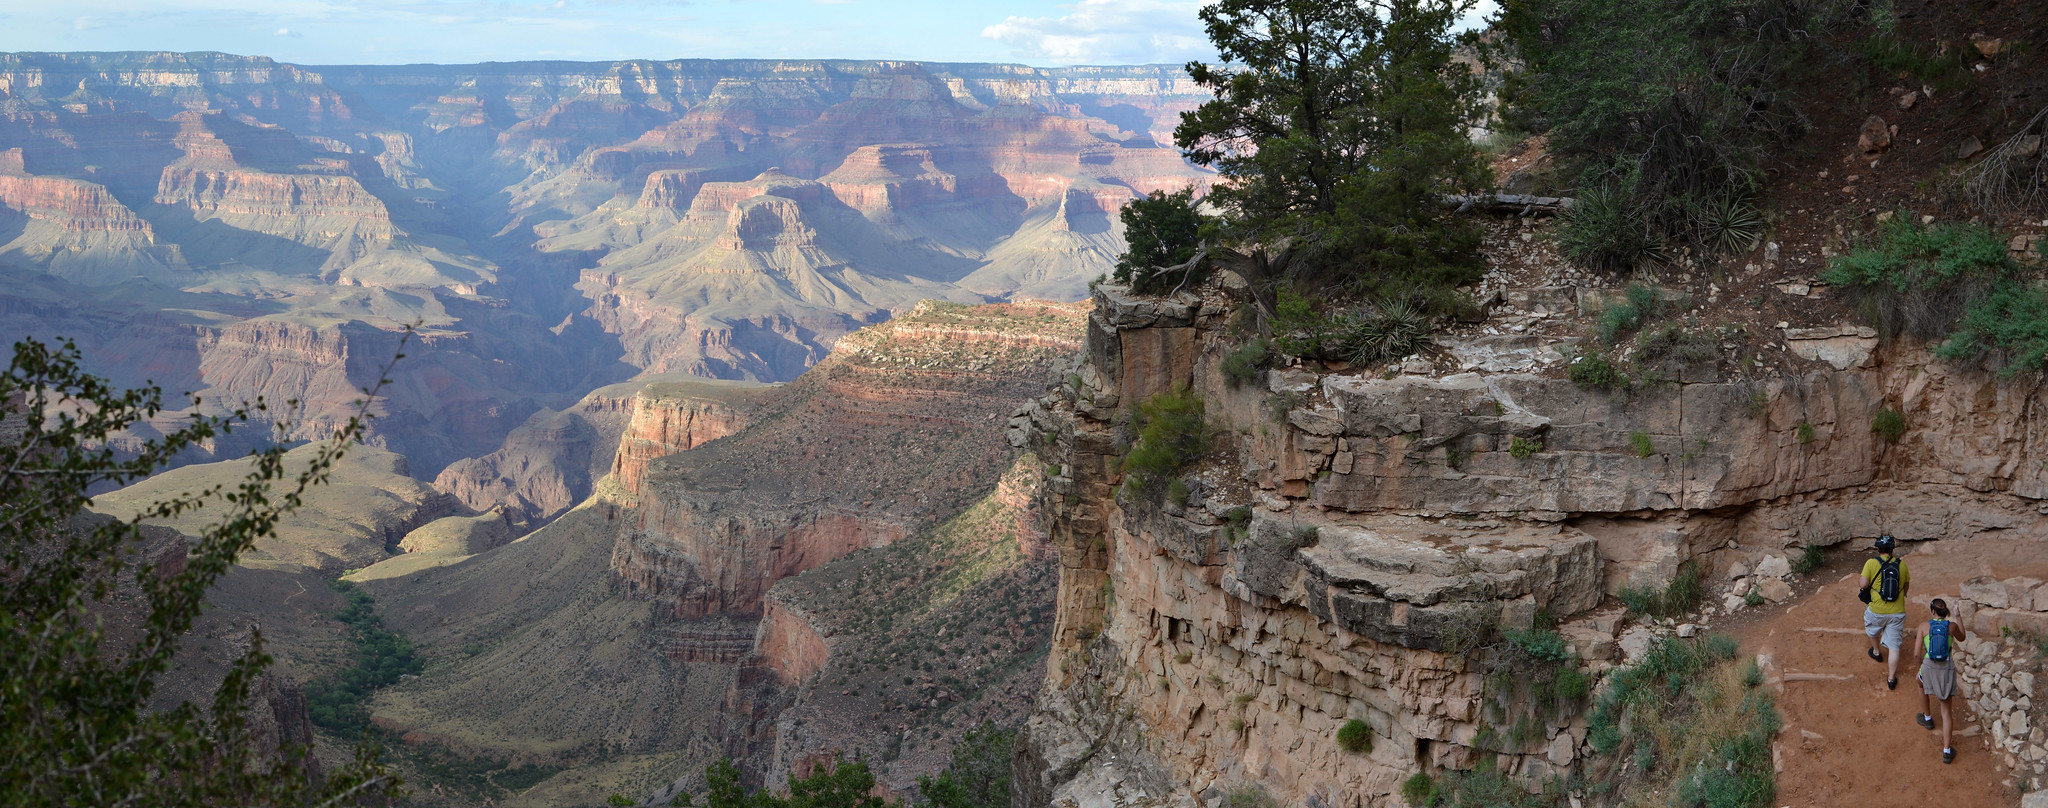 The Grand Canyon is one of the national parks in Arizona still open during the coronavirus.